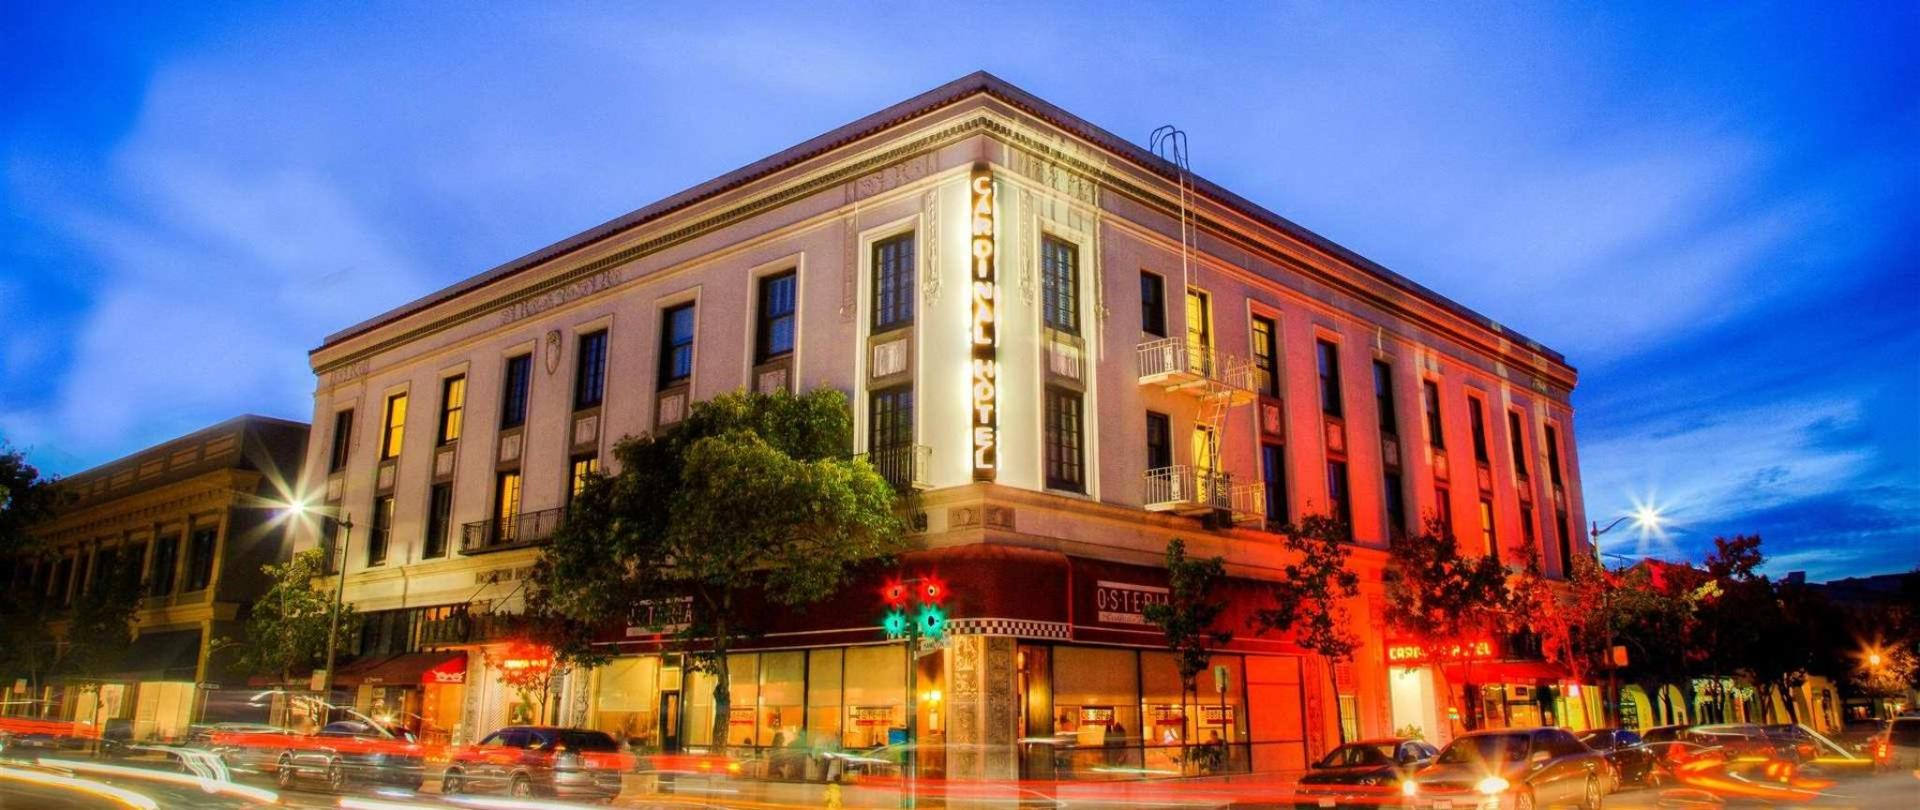 The Cardinal Hotel Palo Alto Stanford Ca United States Of America